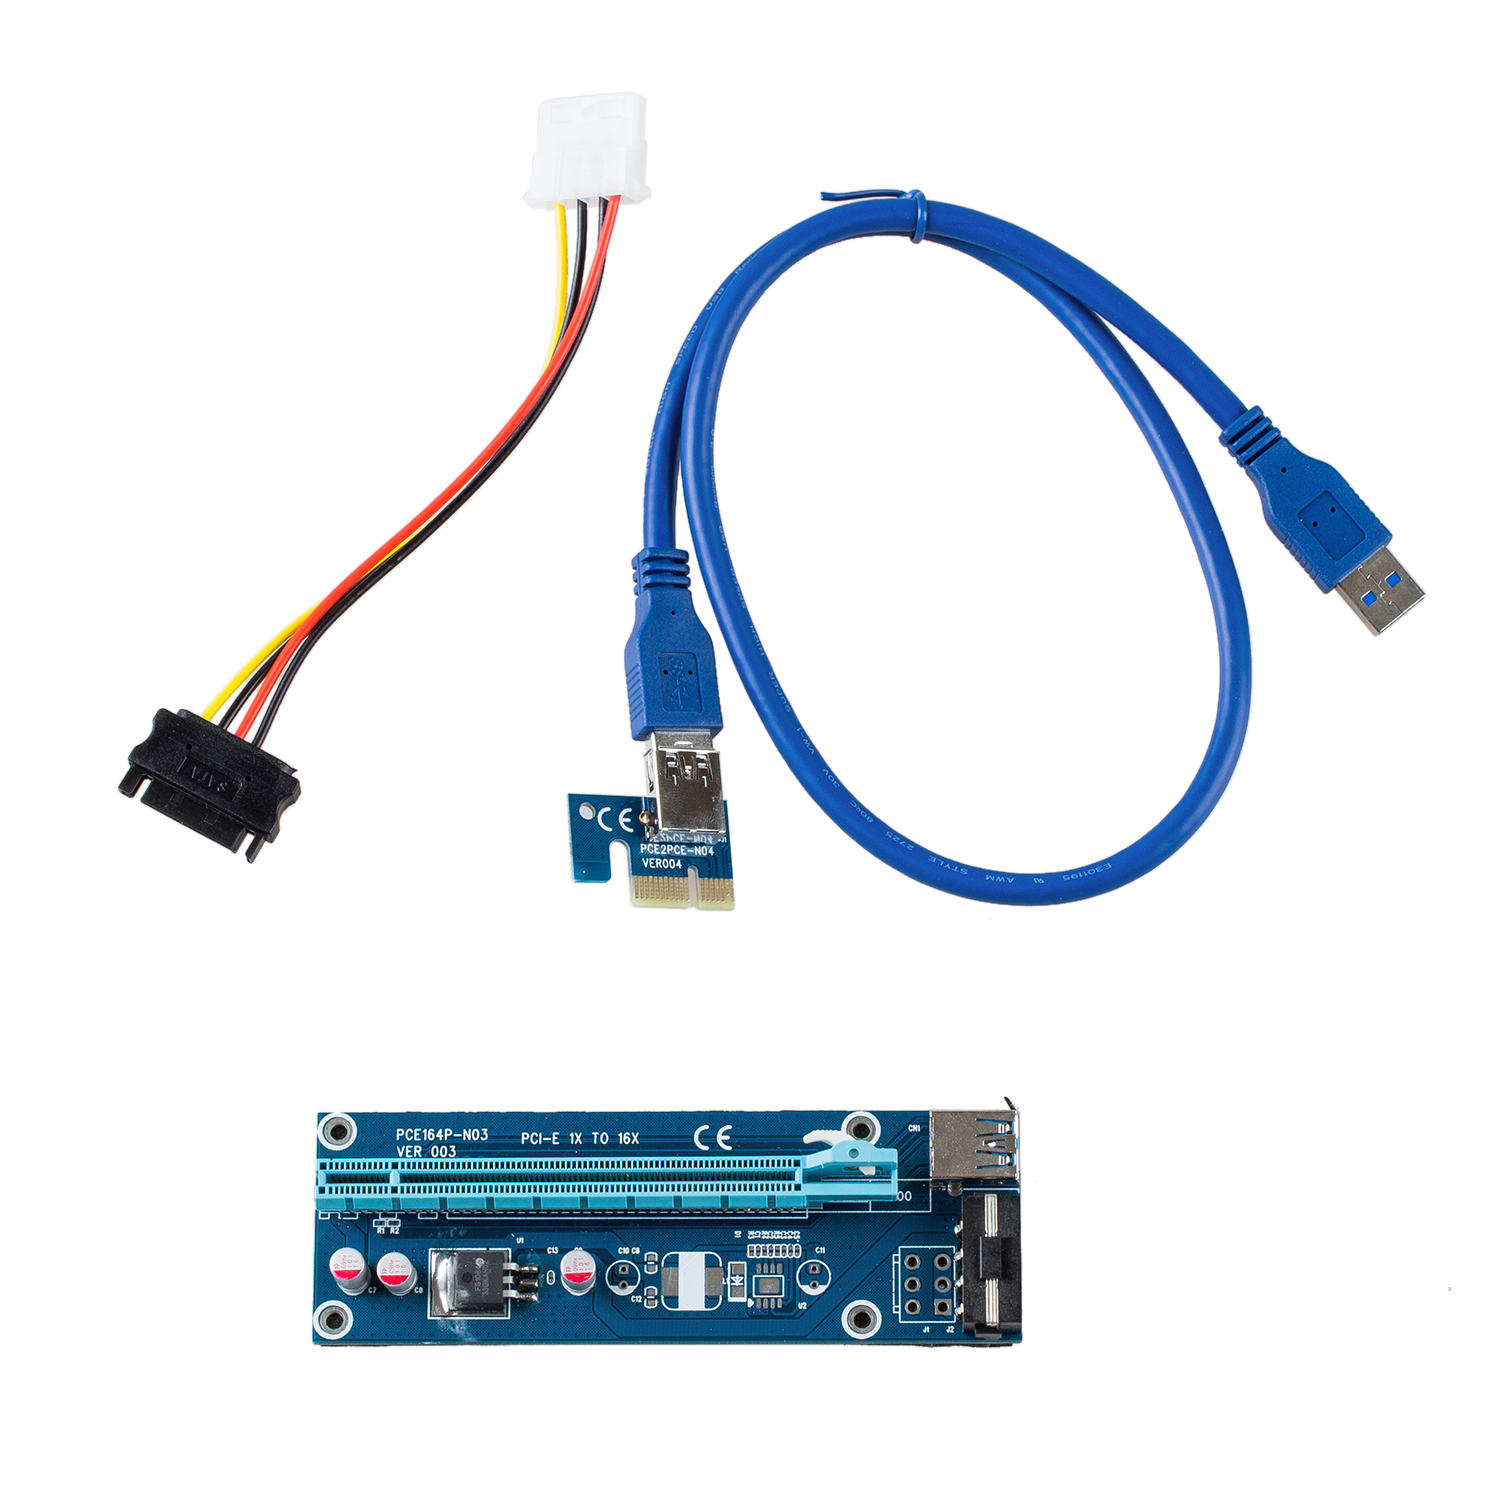 USB 3.0 PCI-E Express 1x to 16x Extender Riser Card Adapter Bitcoin Litecoin pci e to